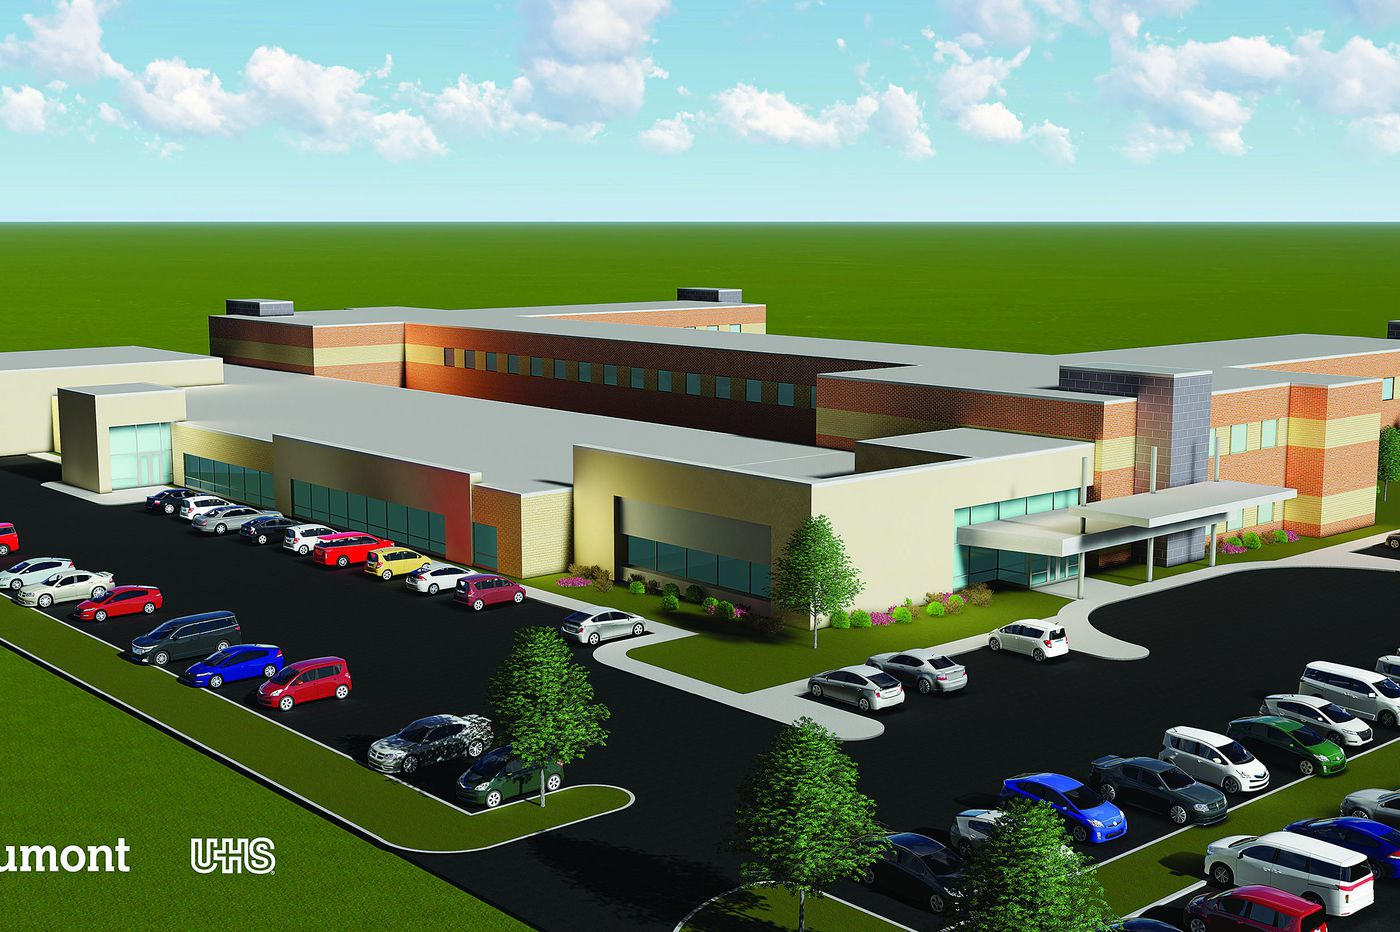 Universal Health Services to build $40M behavioral health facility with Michigan nonprofit